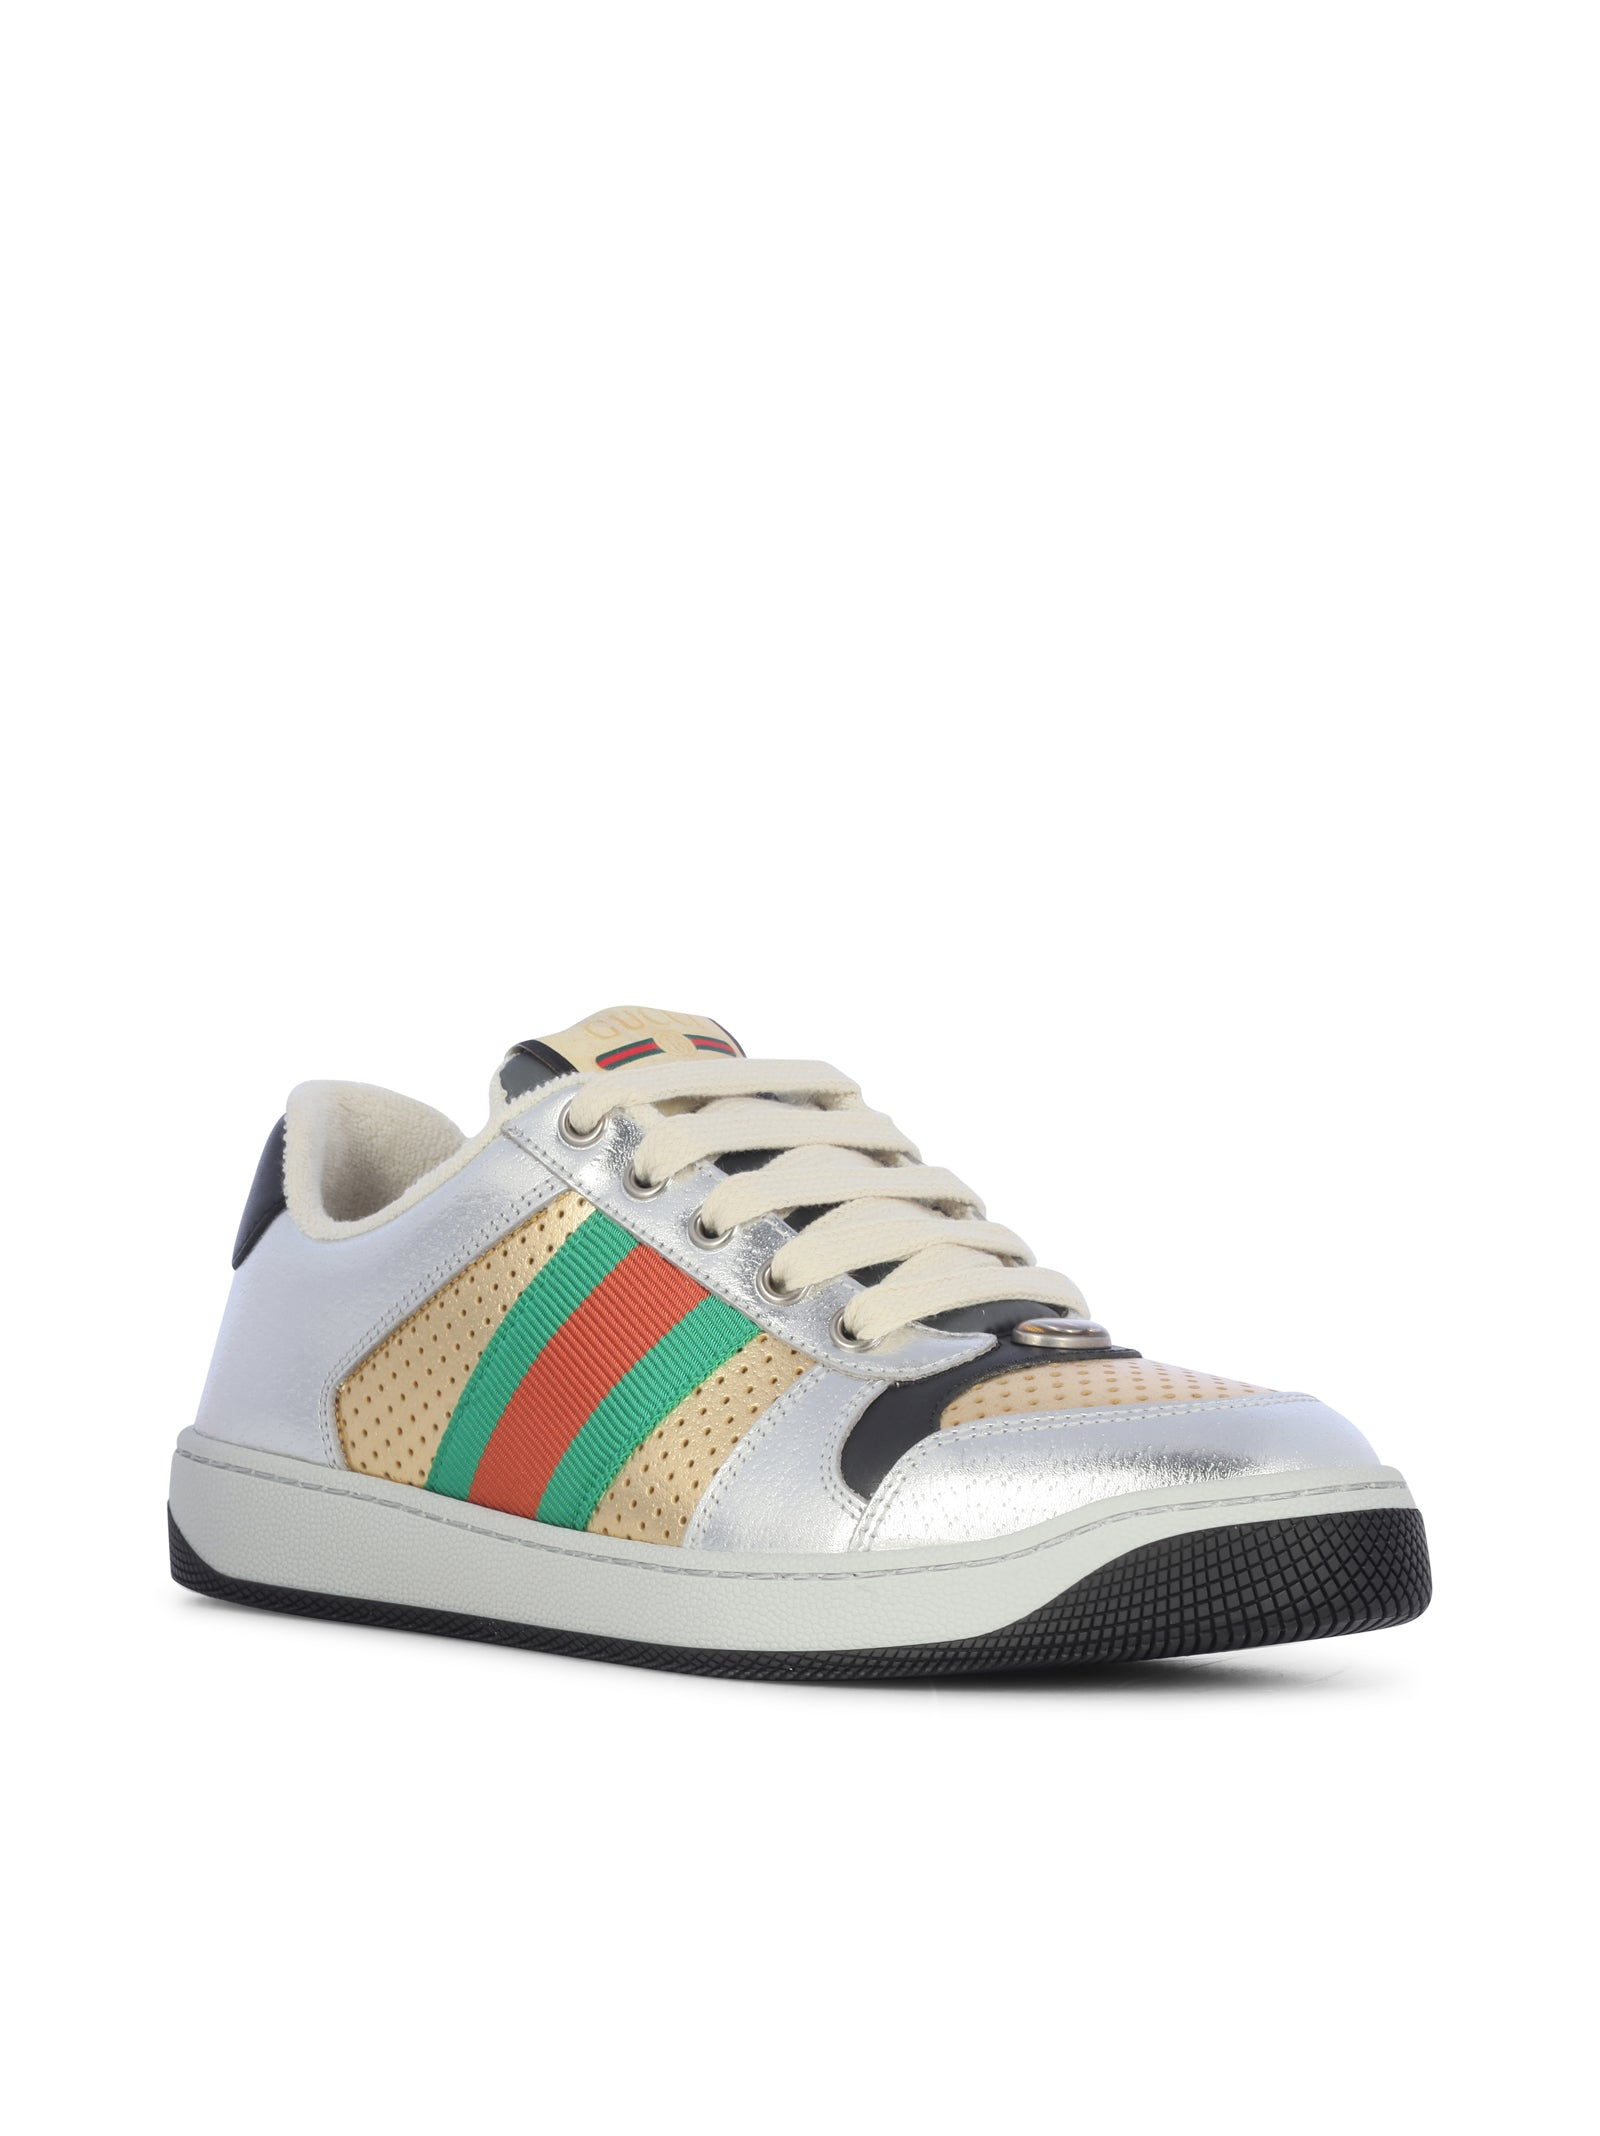 Screener low-top sneakers